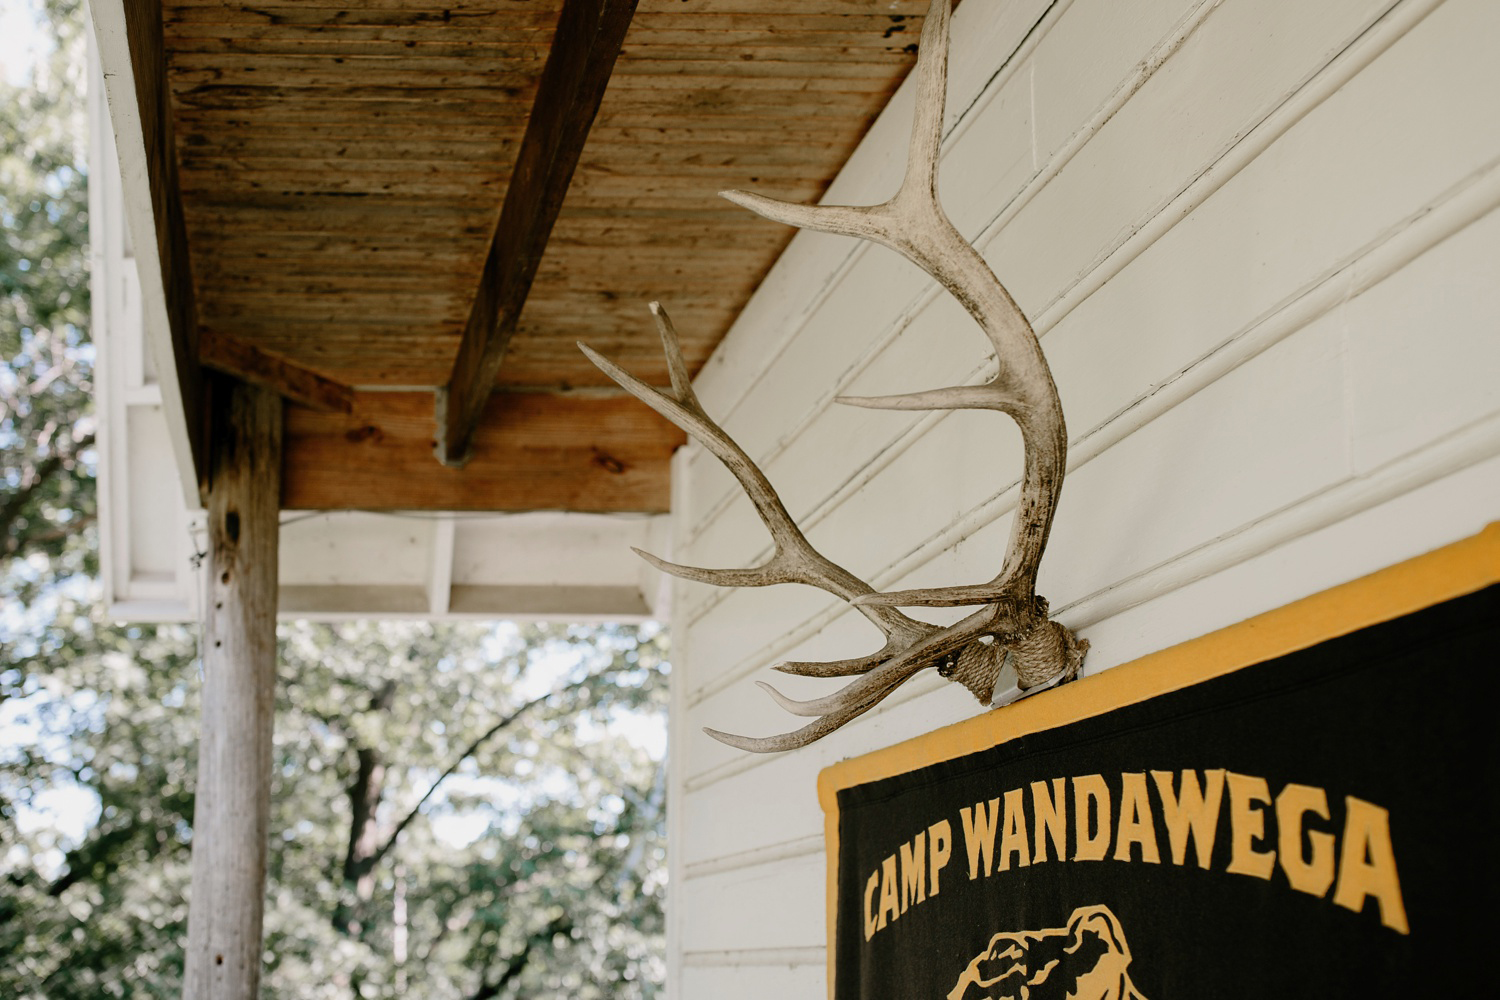 camp wandawega flag and mounted antlers